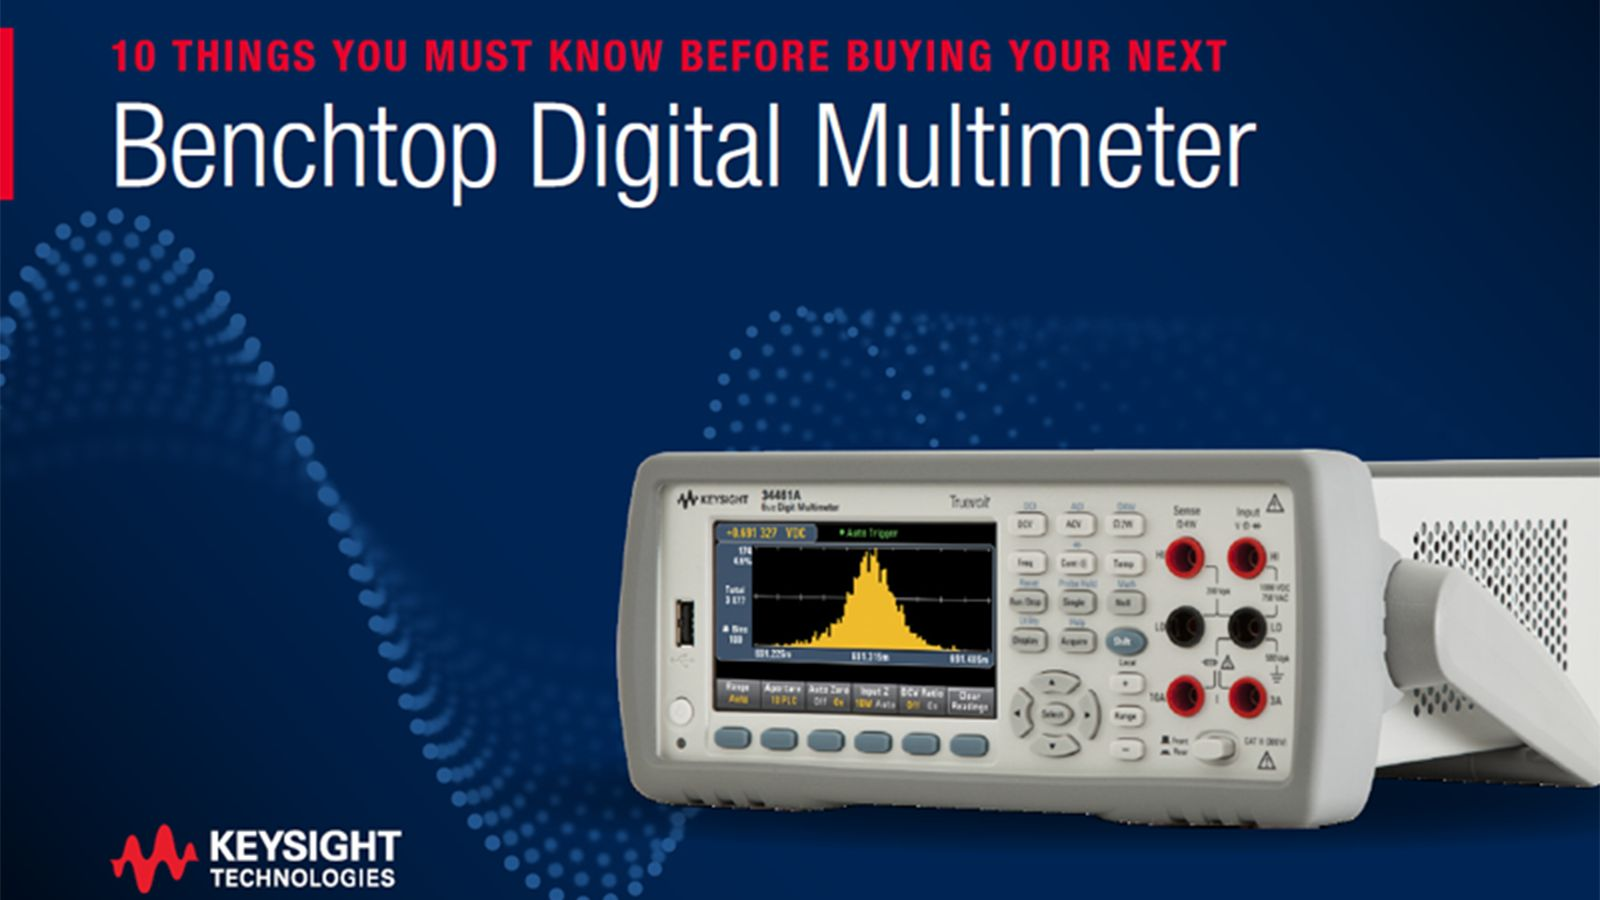 bench digital multimeter